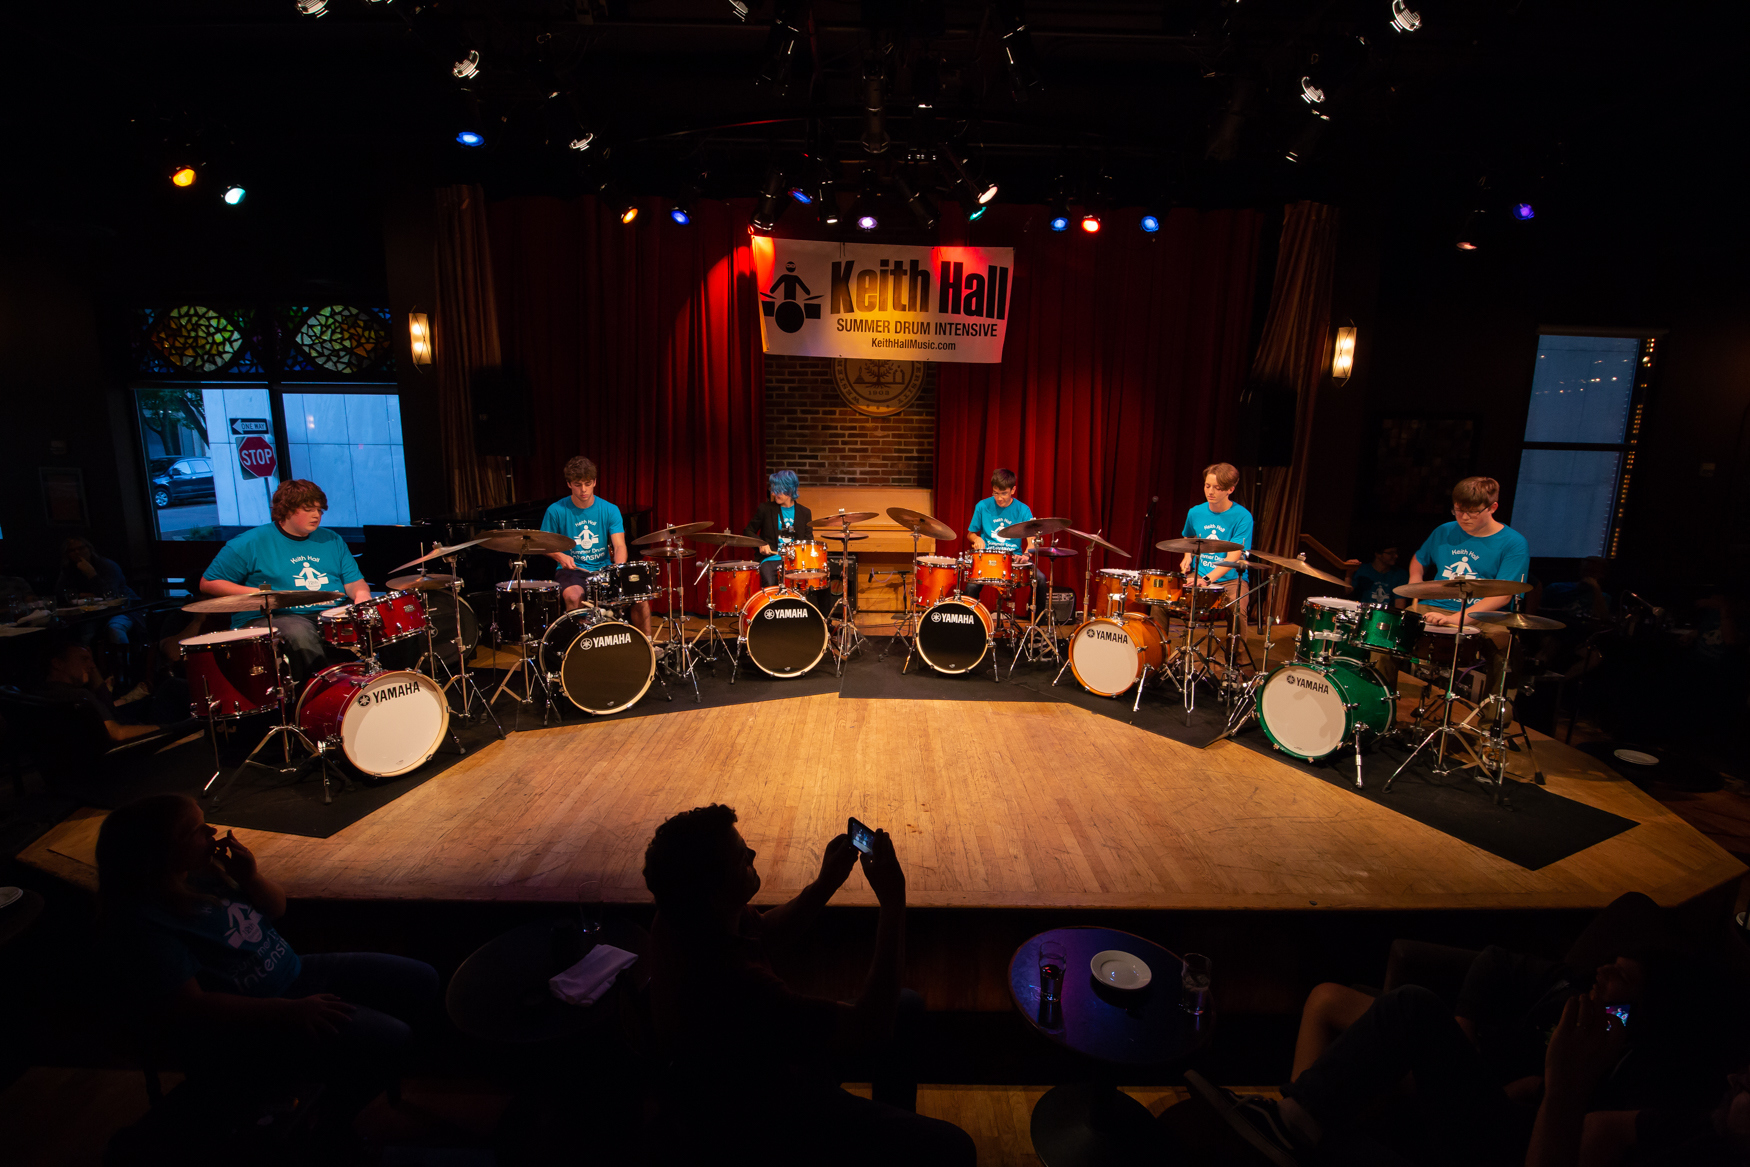 Learn more about the Keith Hall Summer Drum Intensive